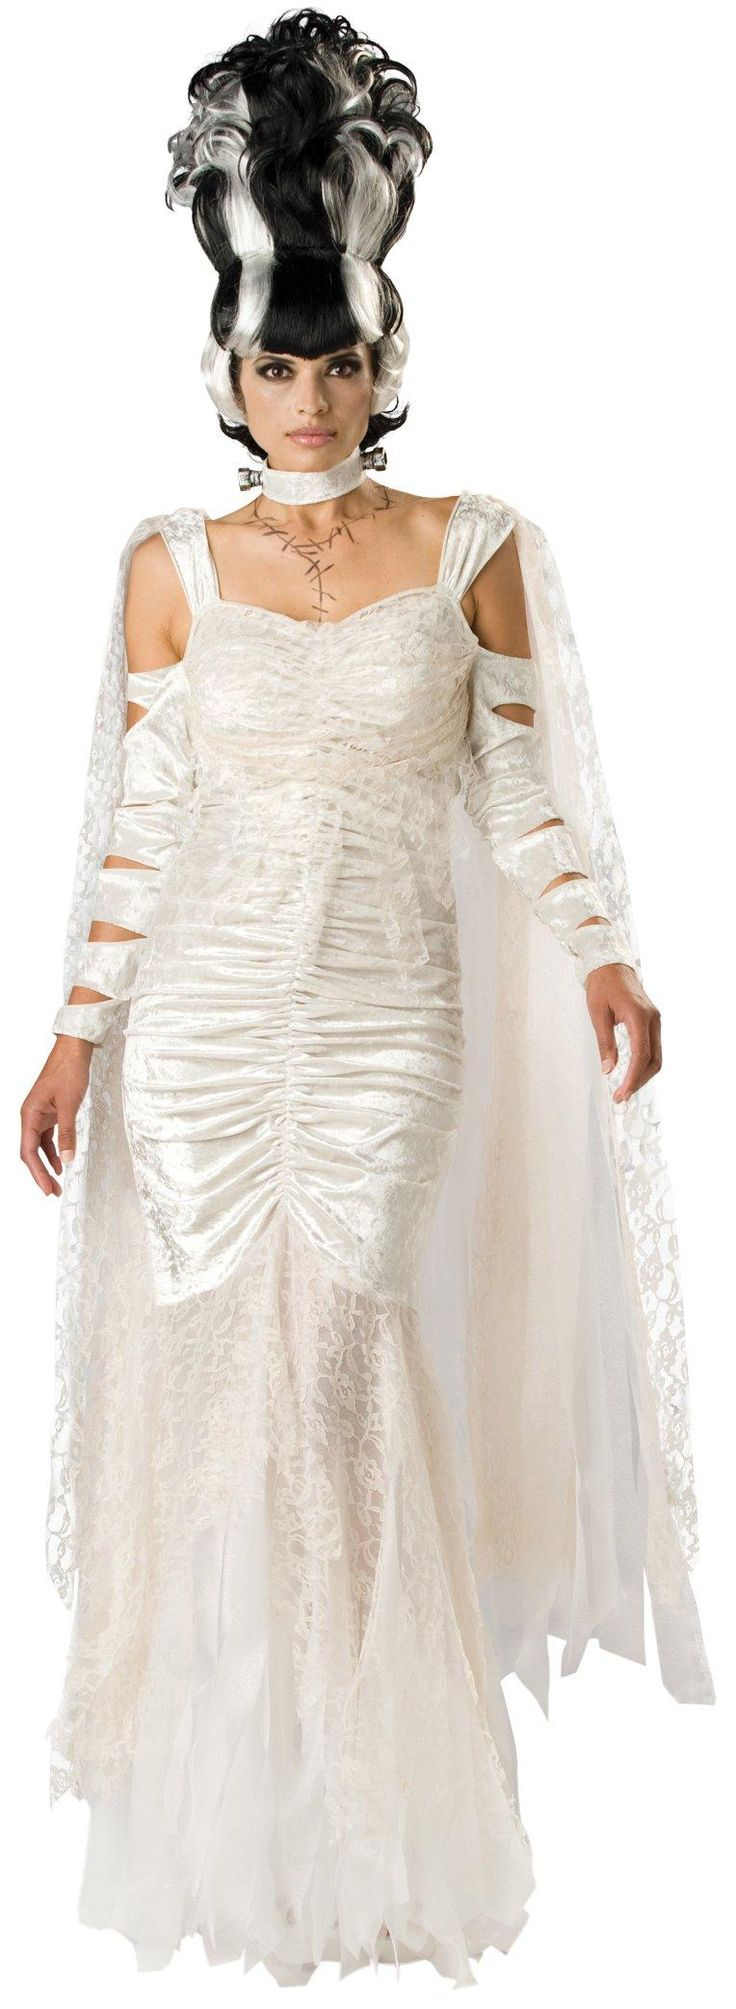 Home gt gt cleopatra costumes gt gt jewel of the nile egyptian adult - Bride Of Frankenstein Elite Adult Costume